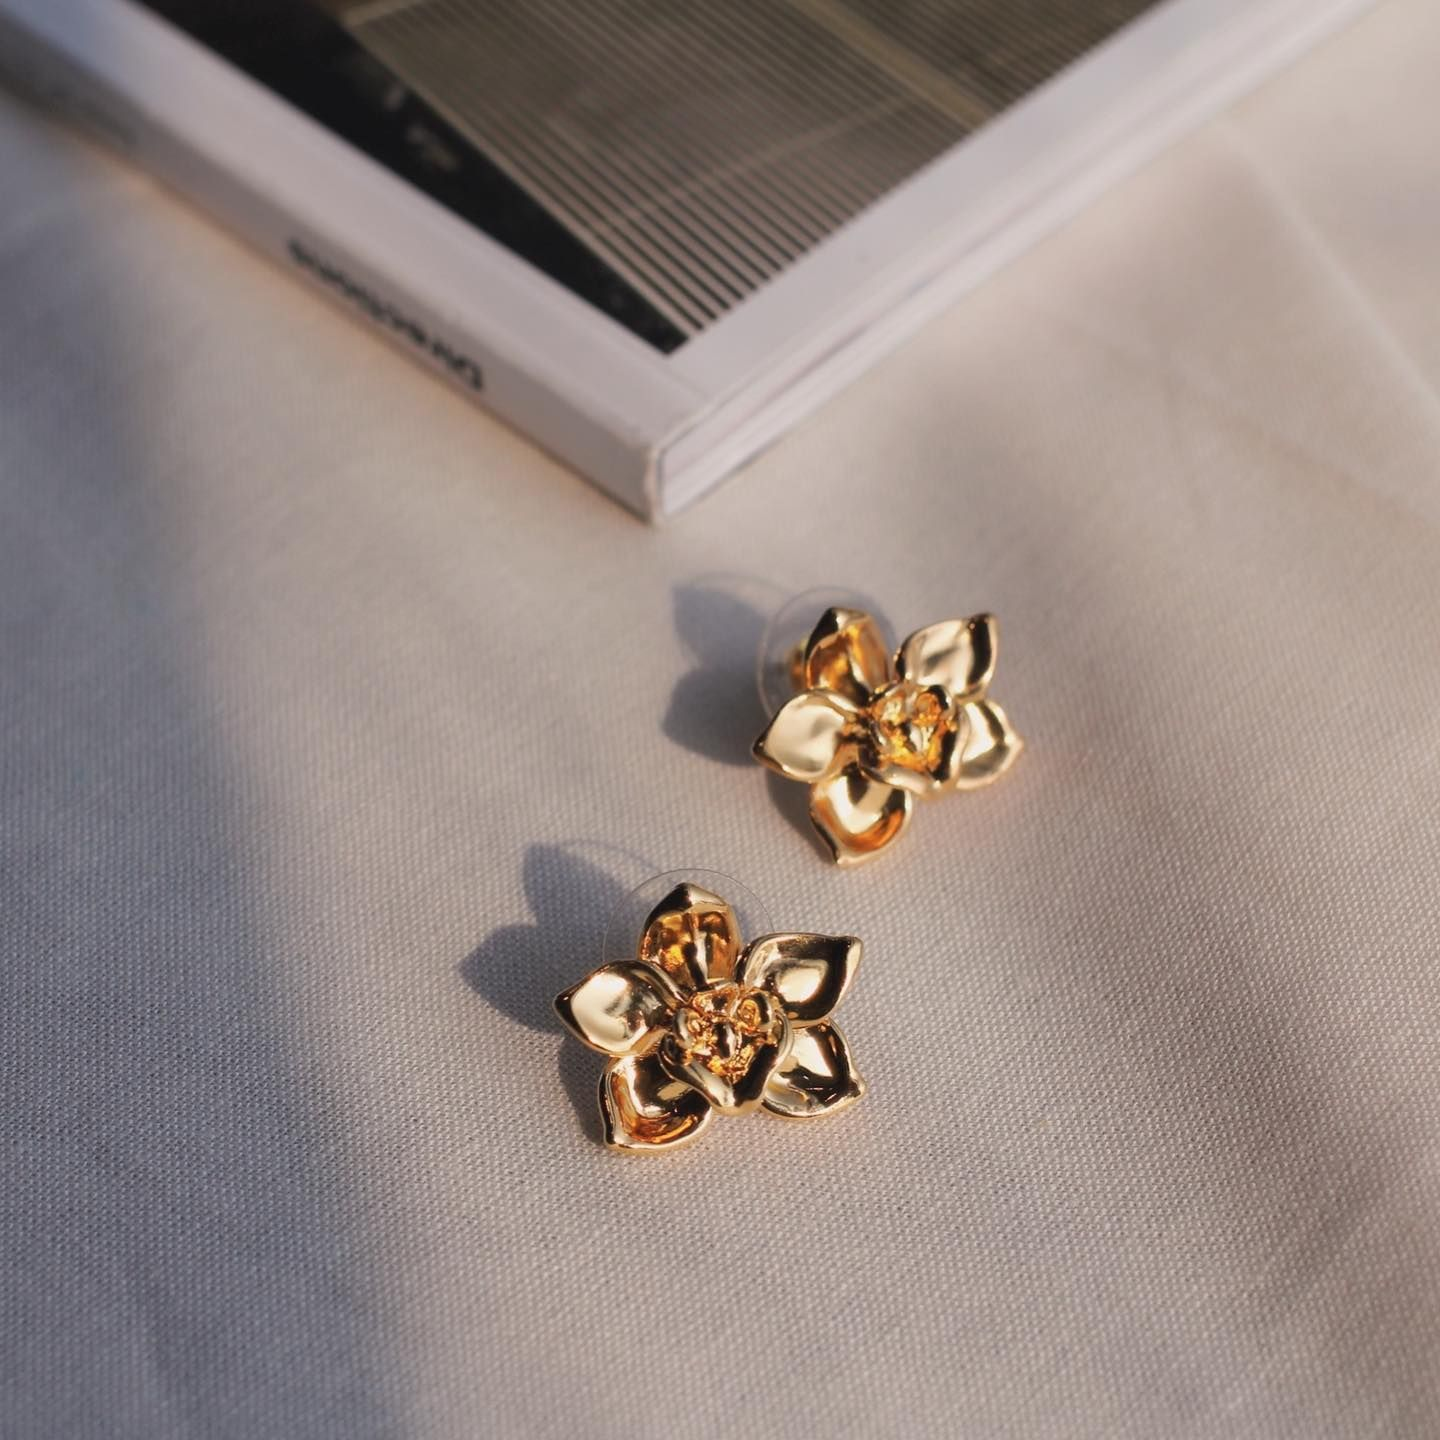 Well Our Idea Of Taking A Day Off From Jewellery Is Wearing These Tiny Cymbidium Orchid Studs Risissg Myri In 2020 Fashion Earrings Floral Jewellery Earrings